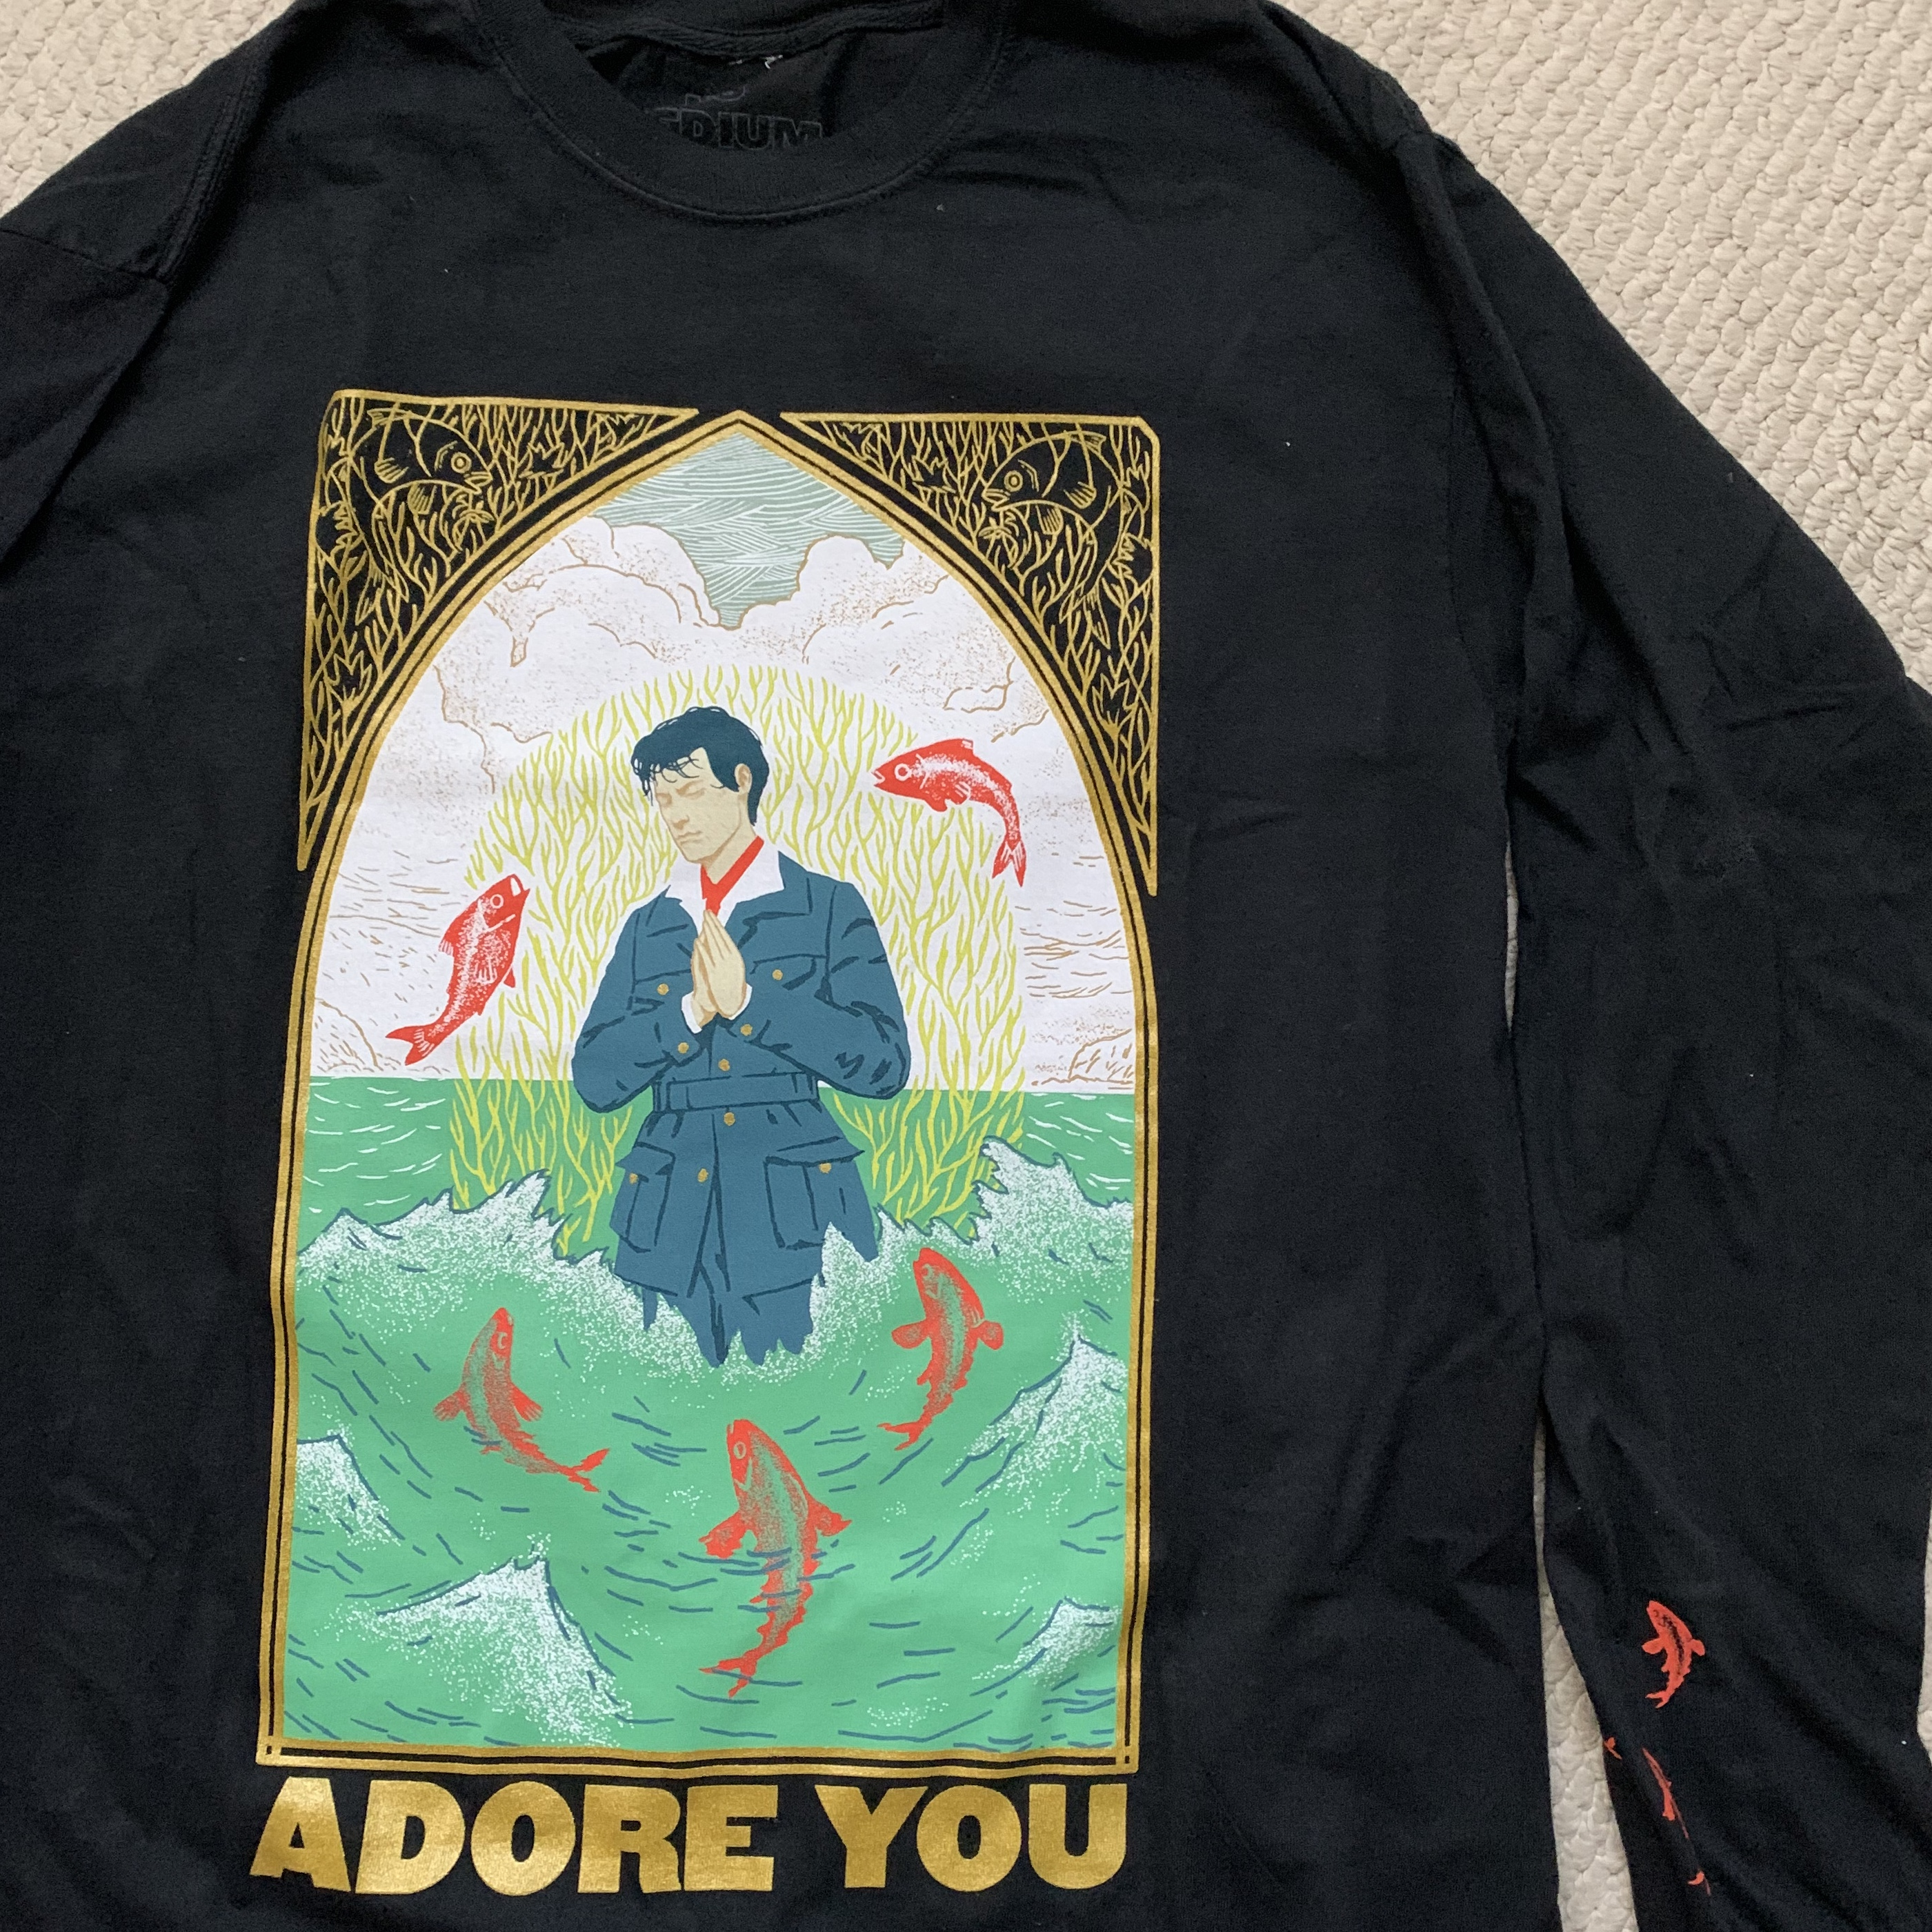 Adore Los Angeles exclusive harry styles adore you longsleeve! from - depop